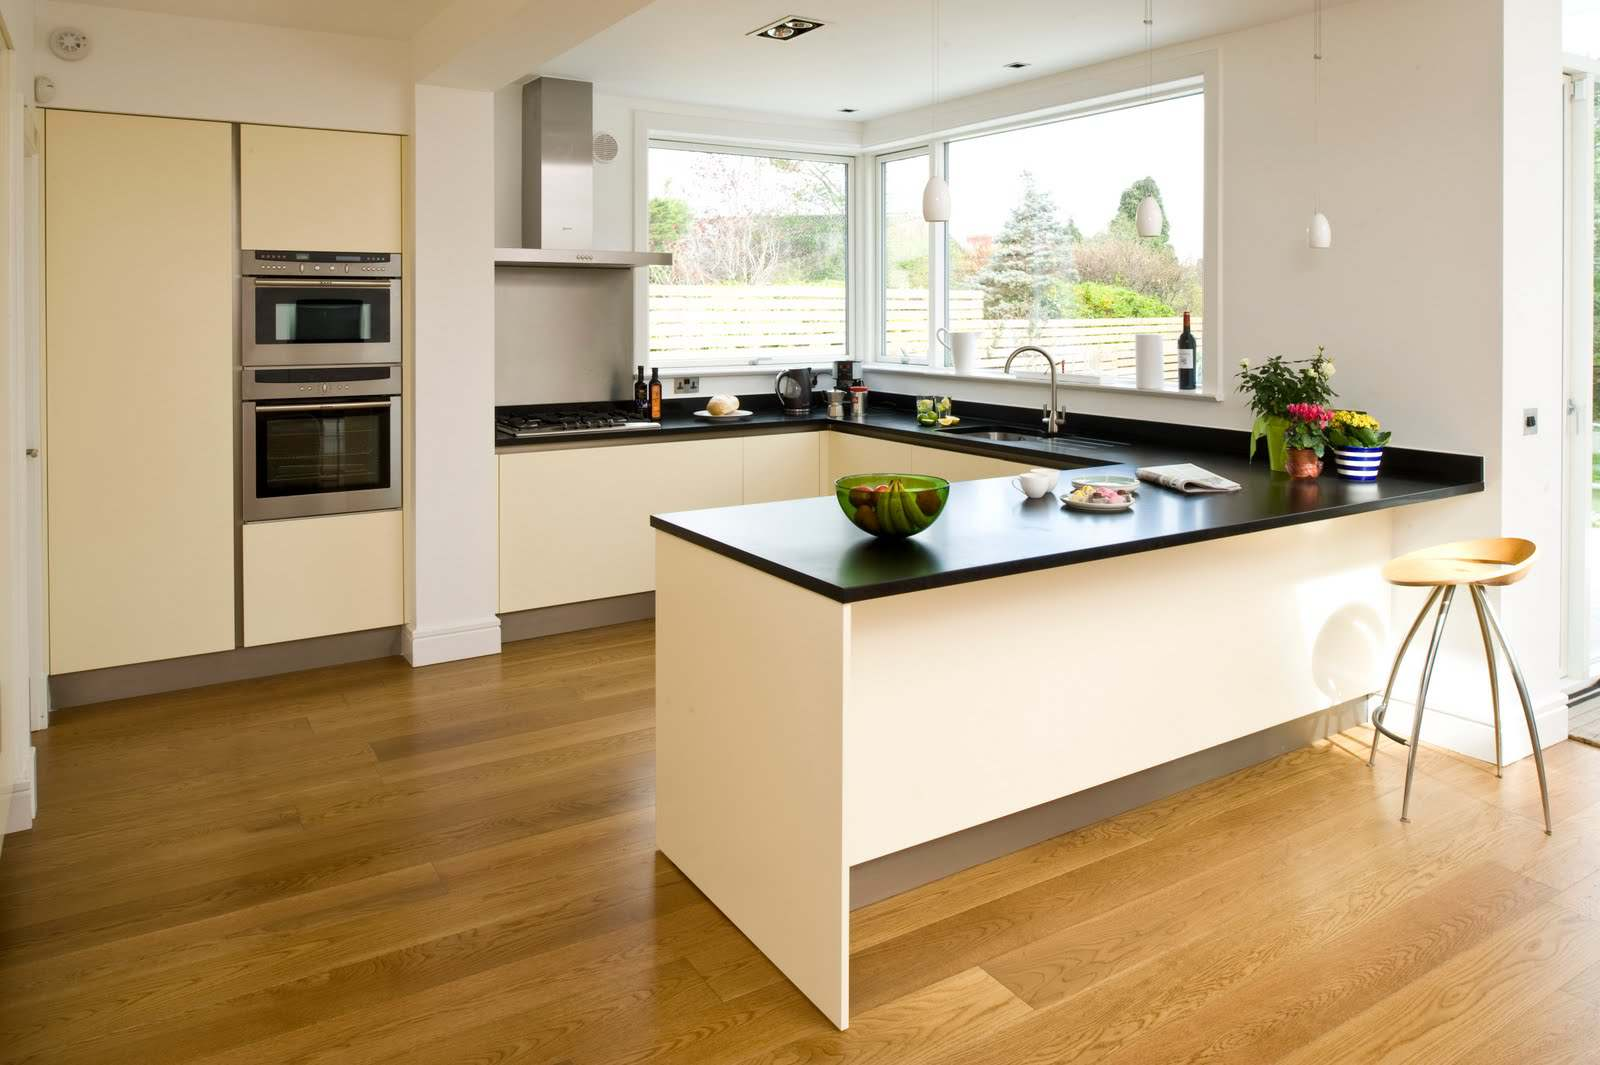 Let us explore the different kinds of kitchen layouts that may suit your style. Bear in mind that the size and shape of the room can directly influence the ... & Varieties Of Kitchen Layouts | Designer Kitchens